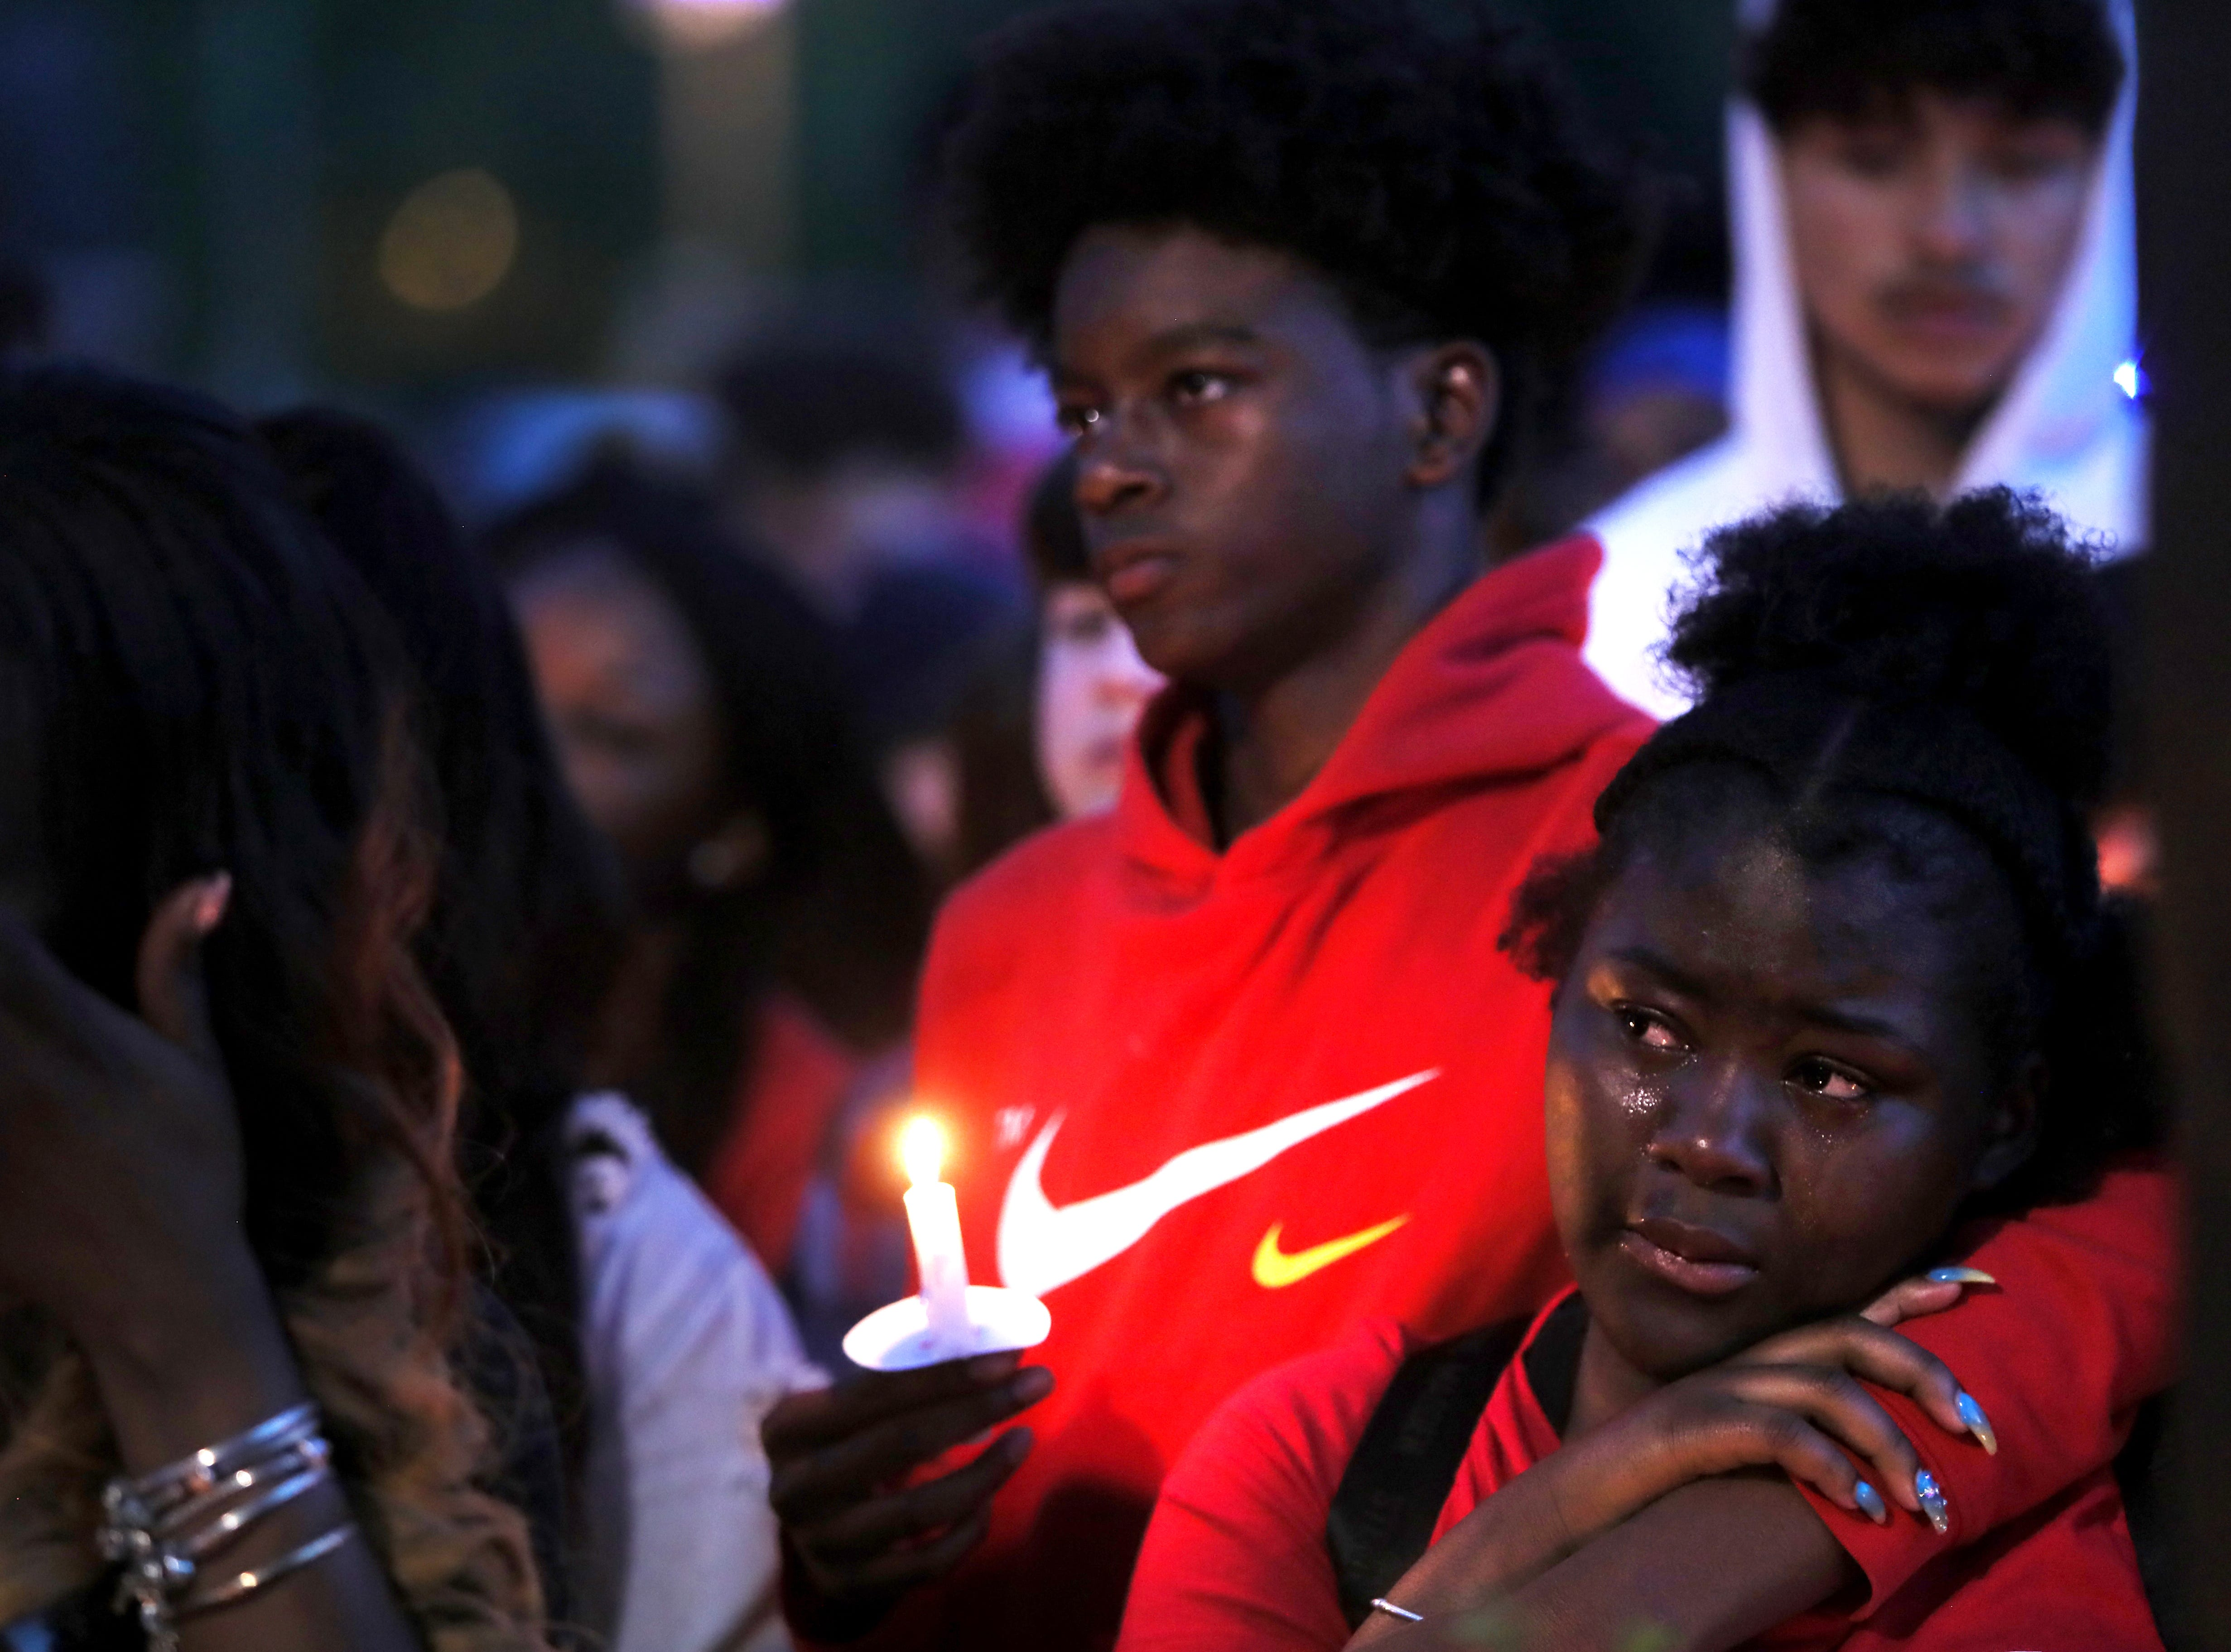 Marcus Foy consoles Skyy Bowser as they gather for a vigil Tuesday at West Junior High School in honor of former student Taylon Vail, 16, who was killed early Friday morning in a shooting at his grandparent's house where he was staying overnight.